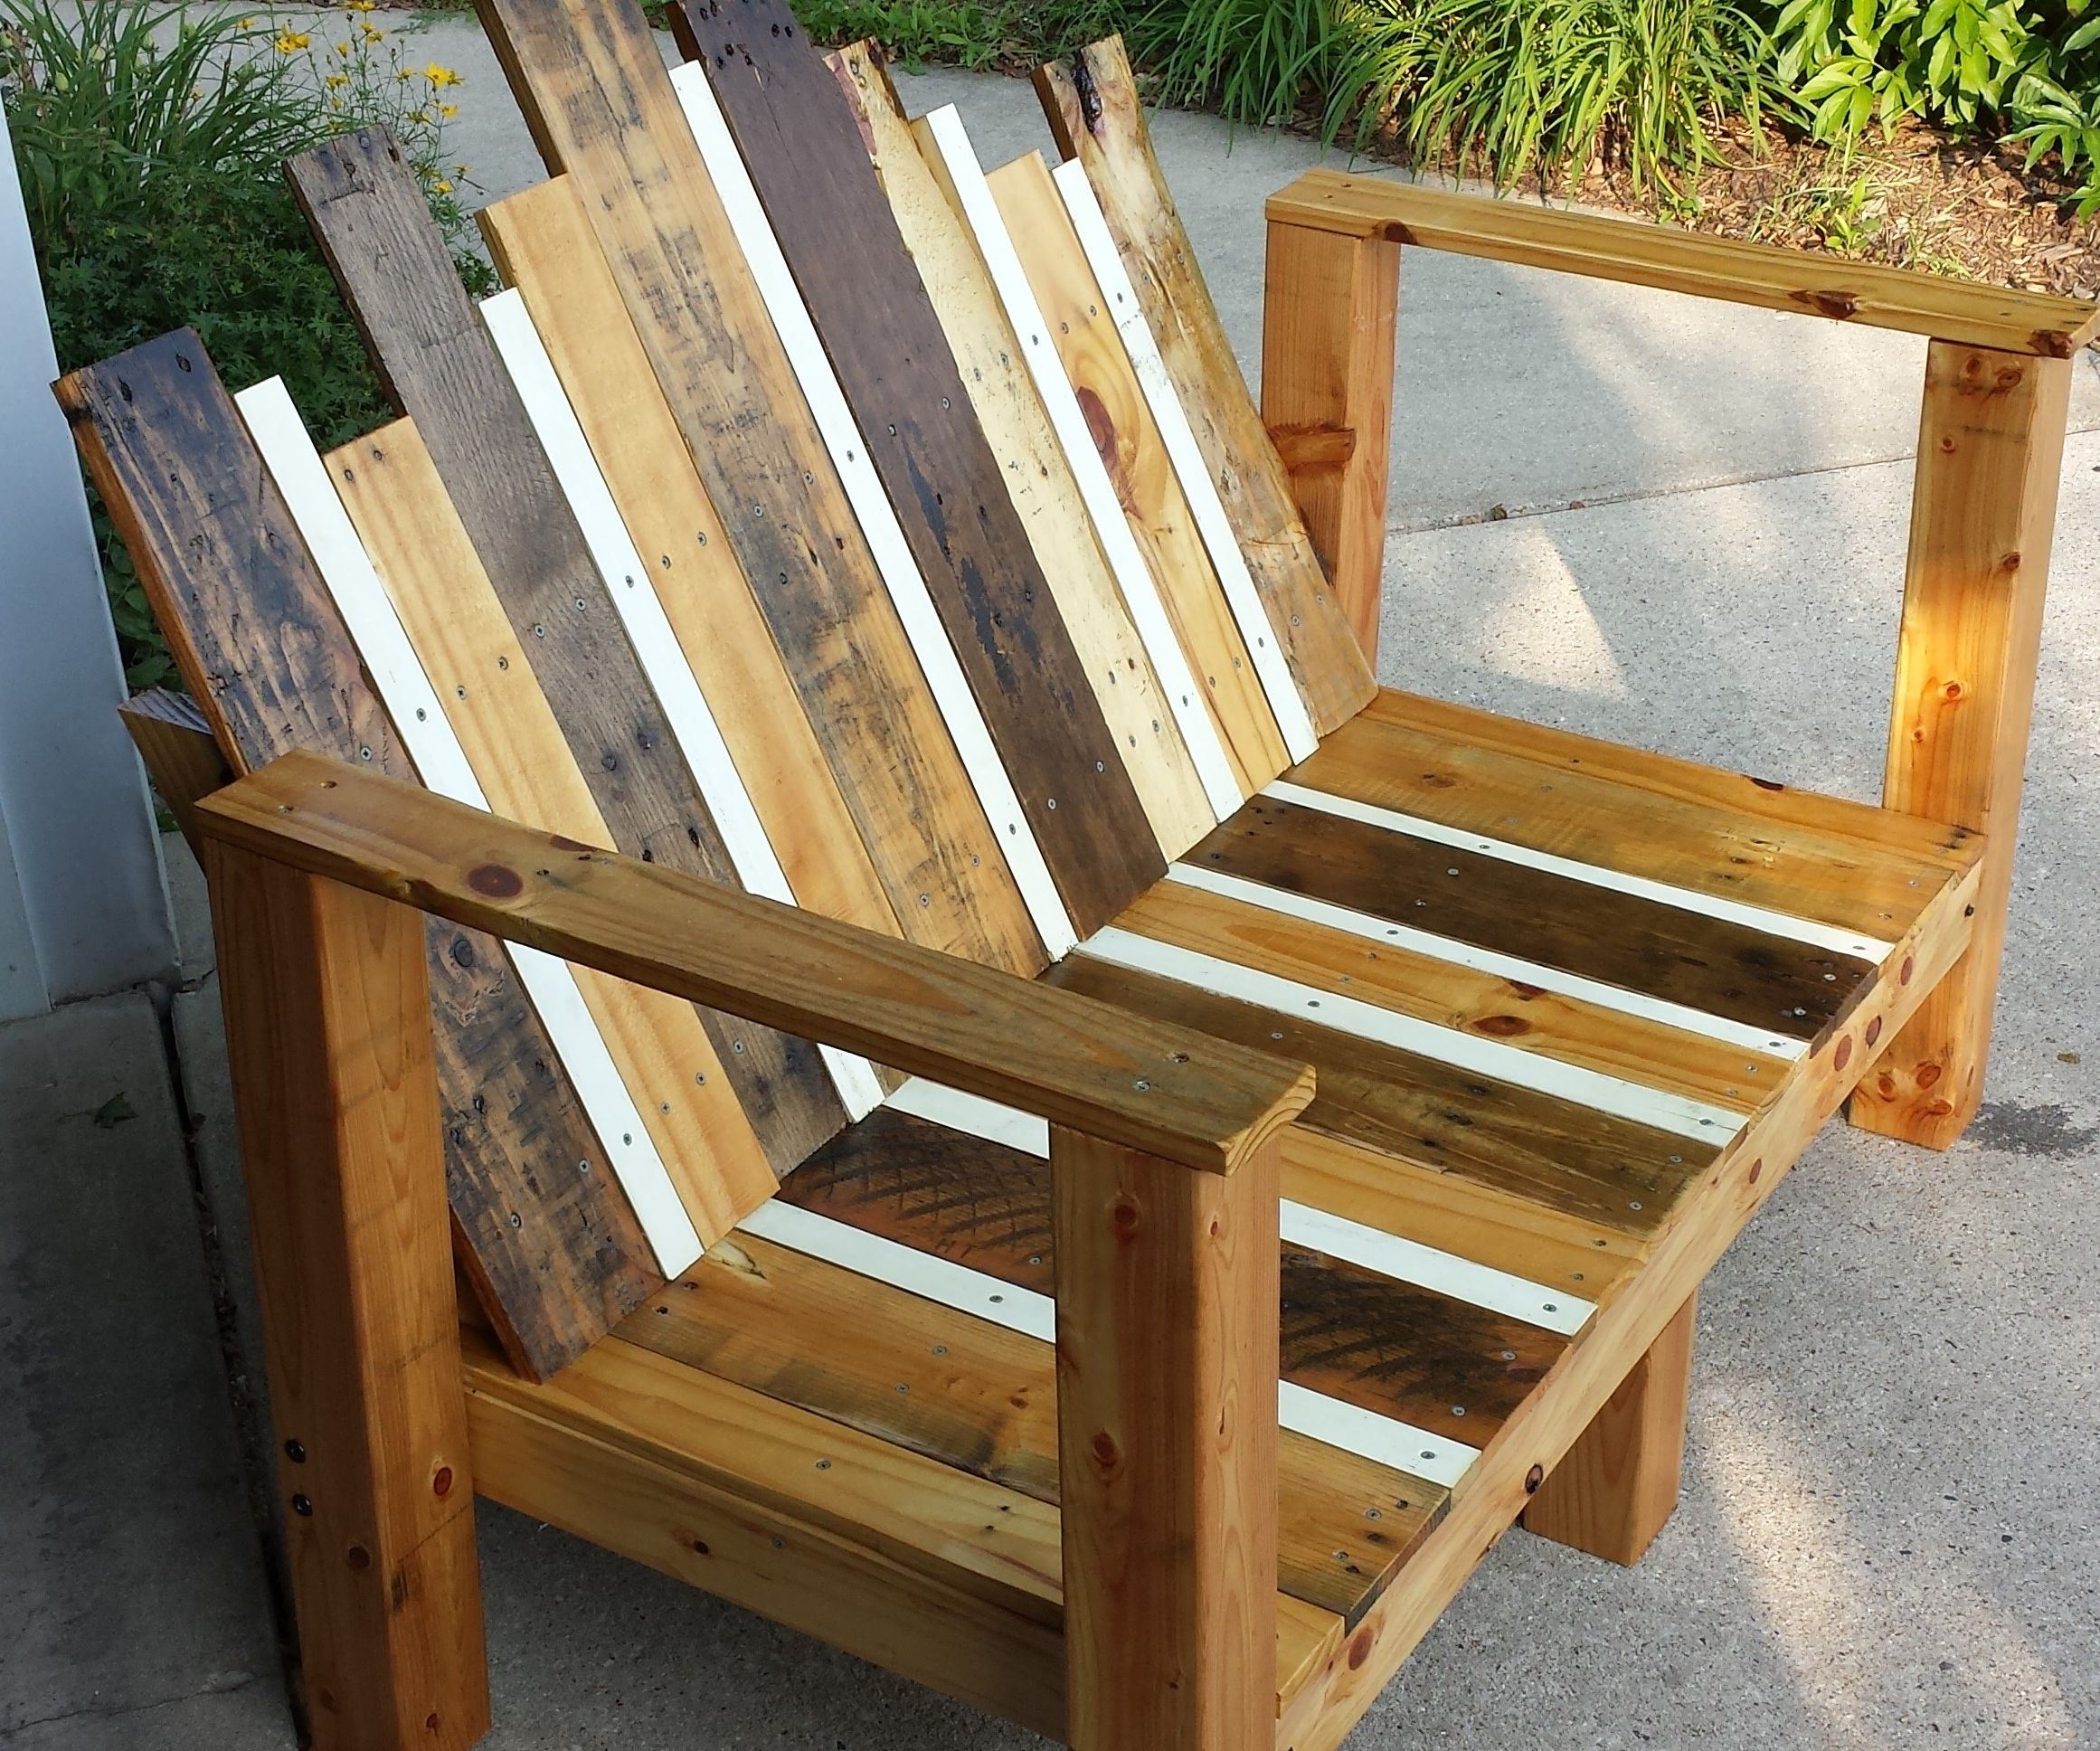 Stupendous Outdoor Bench 5 Steps With Pictures Gmtry Best Dining Table And Chair Ideas Images Gmtryco